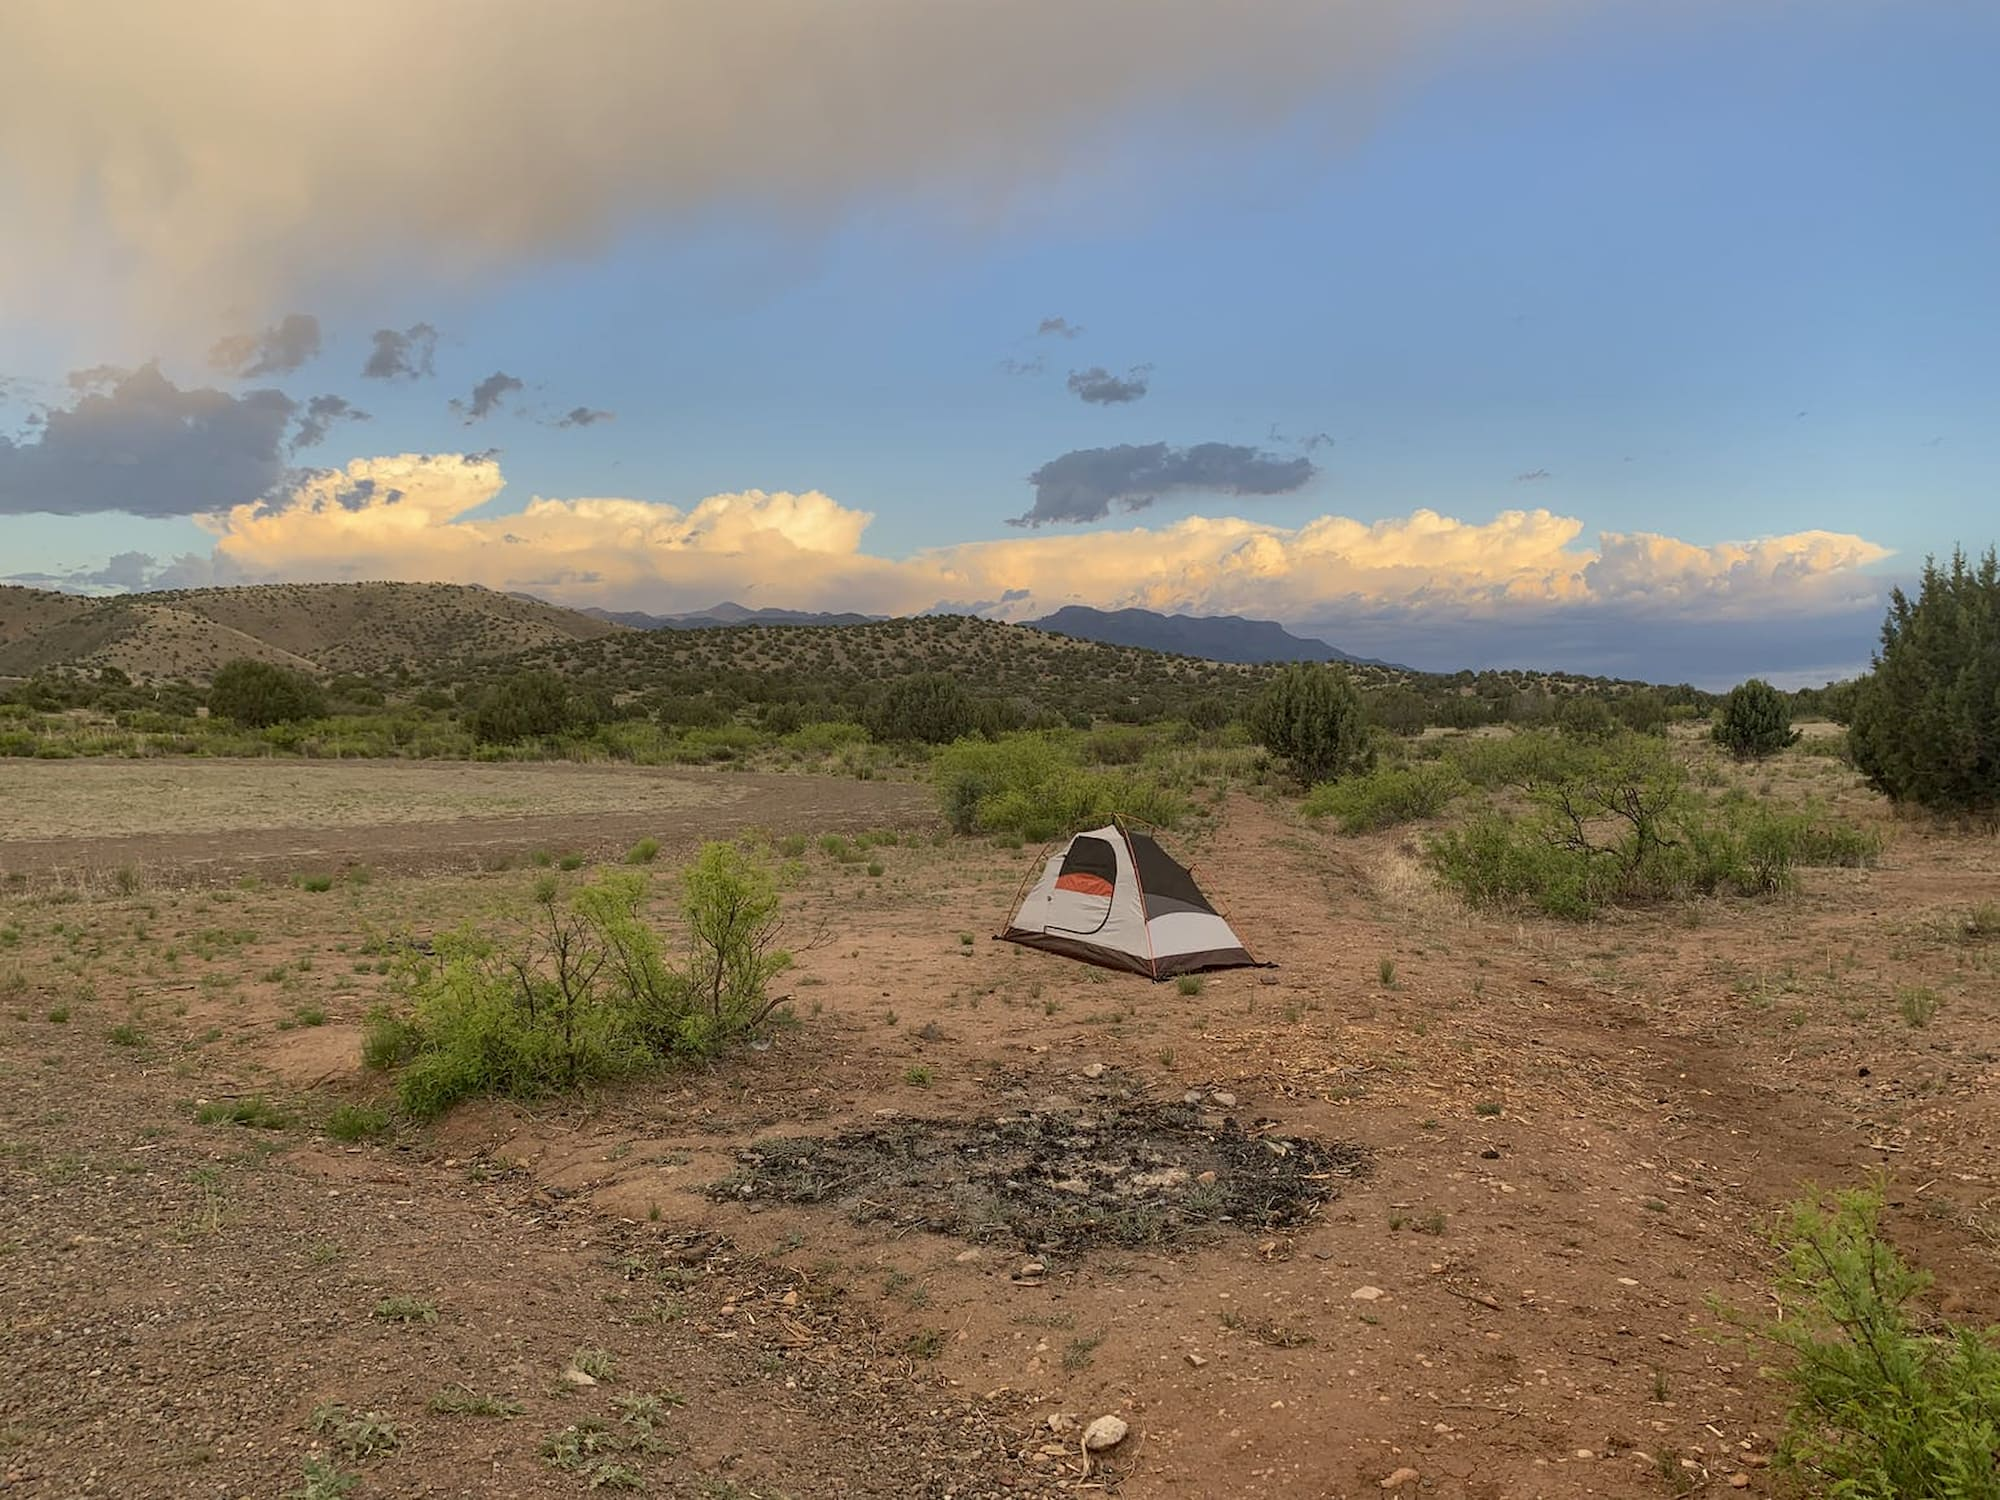 Small tent setup in expansive mountain desert landscape.